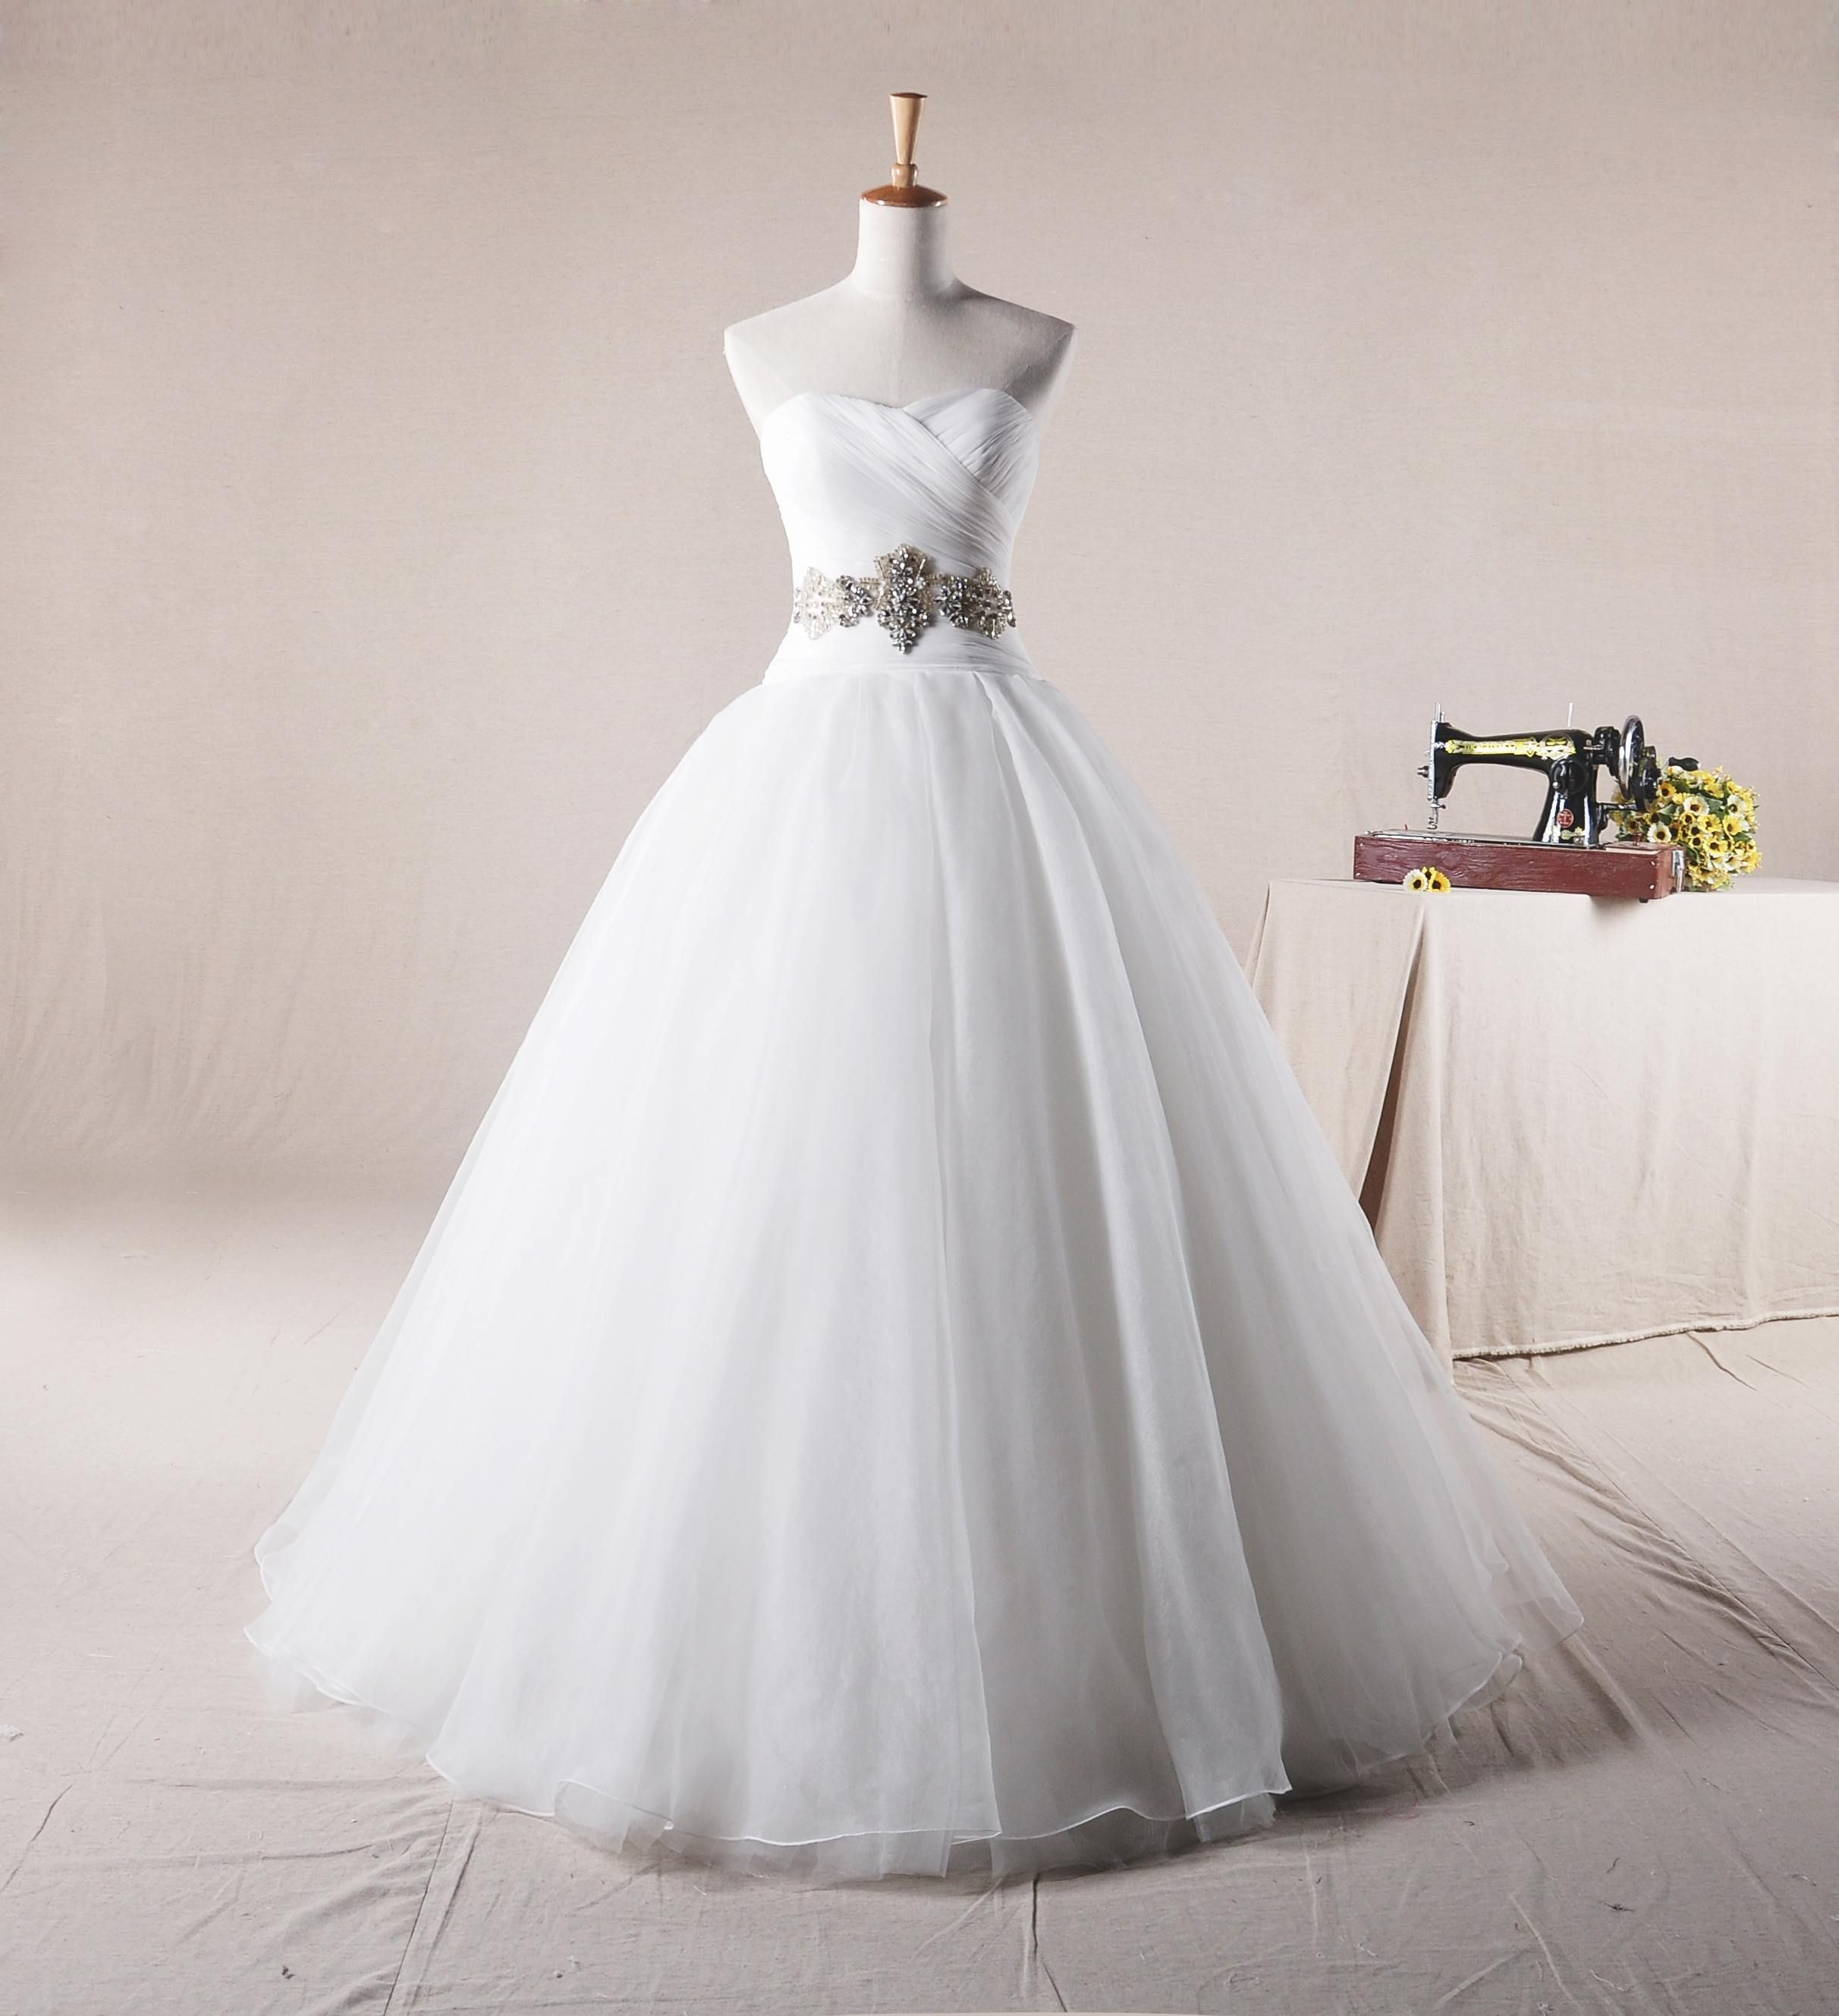 Sweetheart ball gown net wedding dress if the jeweled part was